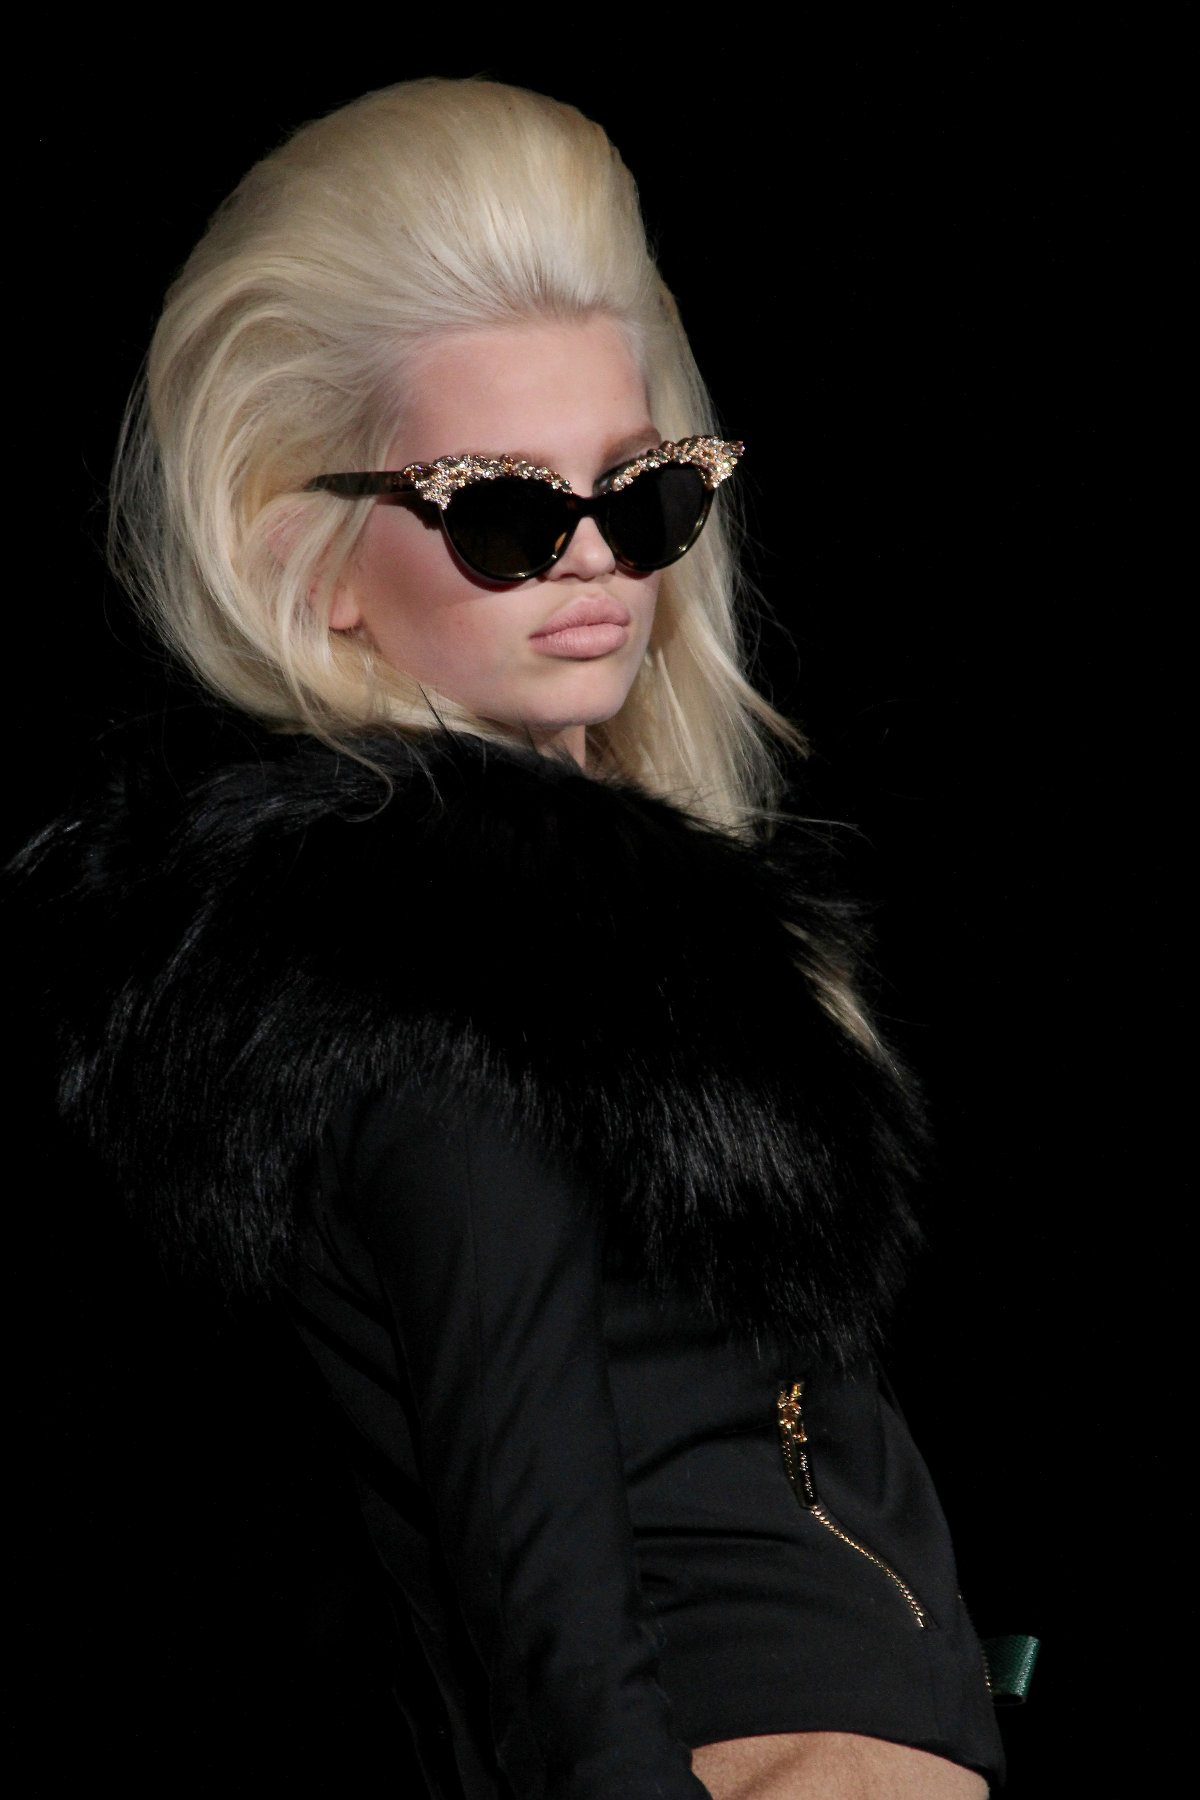 Dsquared2 Fashion Model FW 2012-13